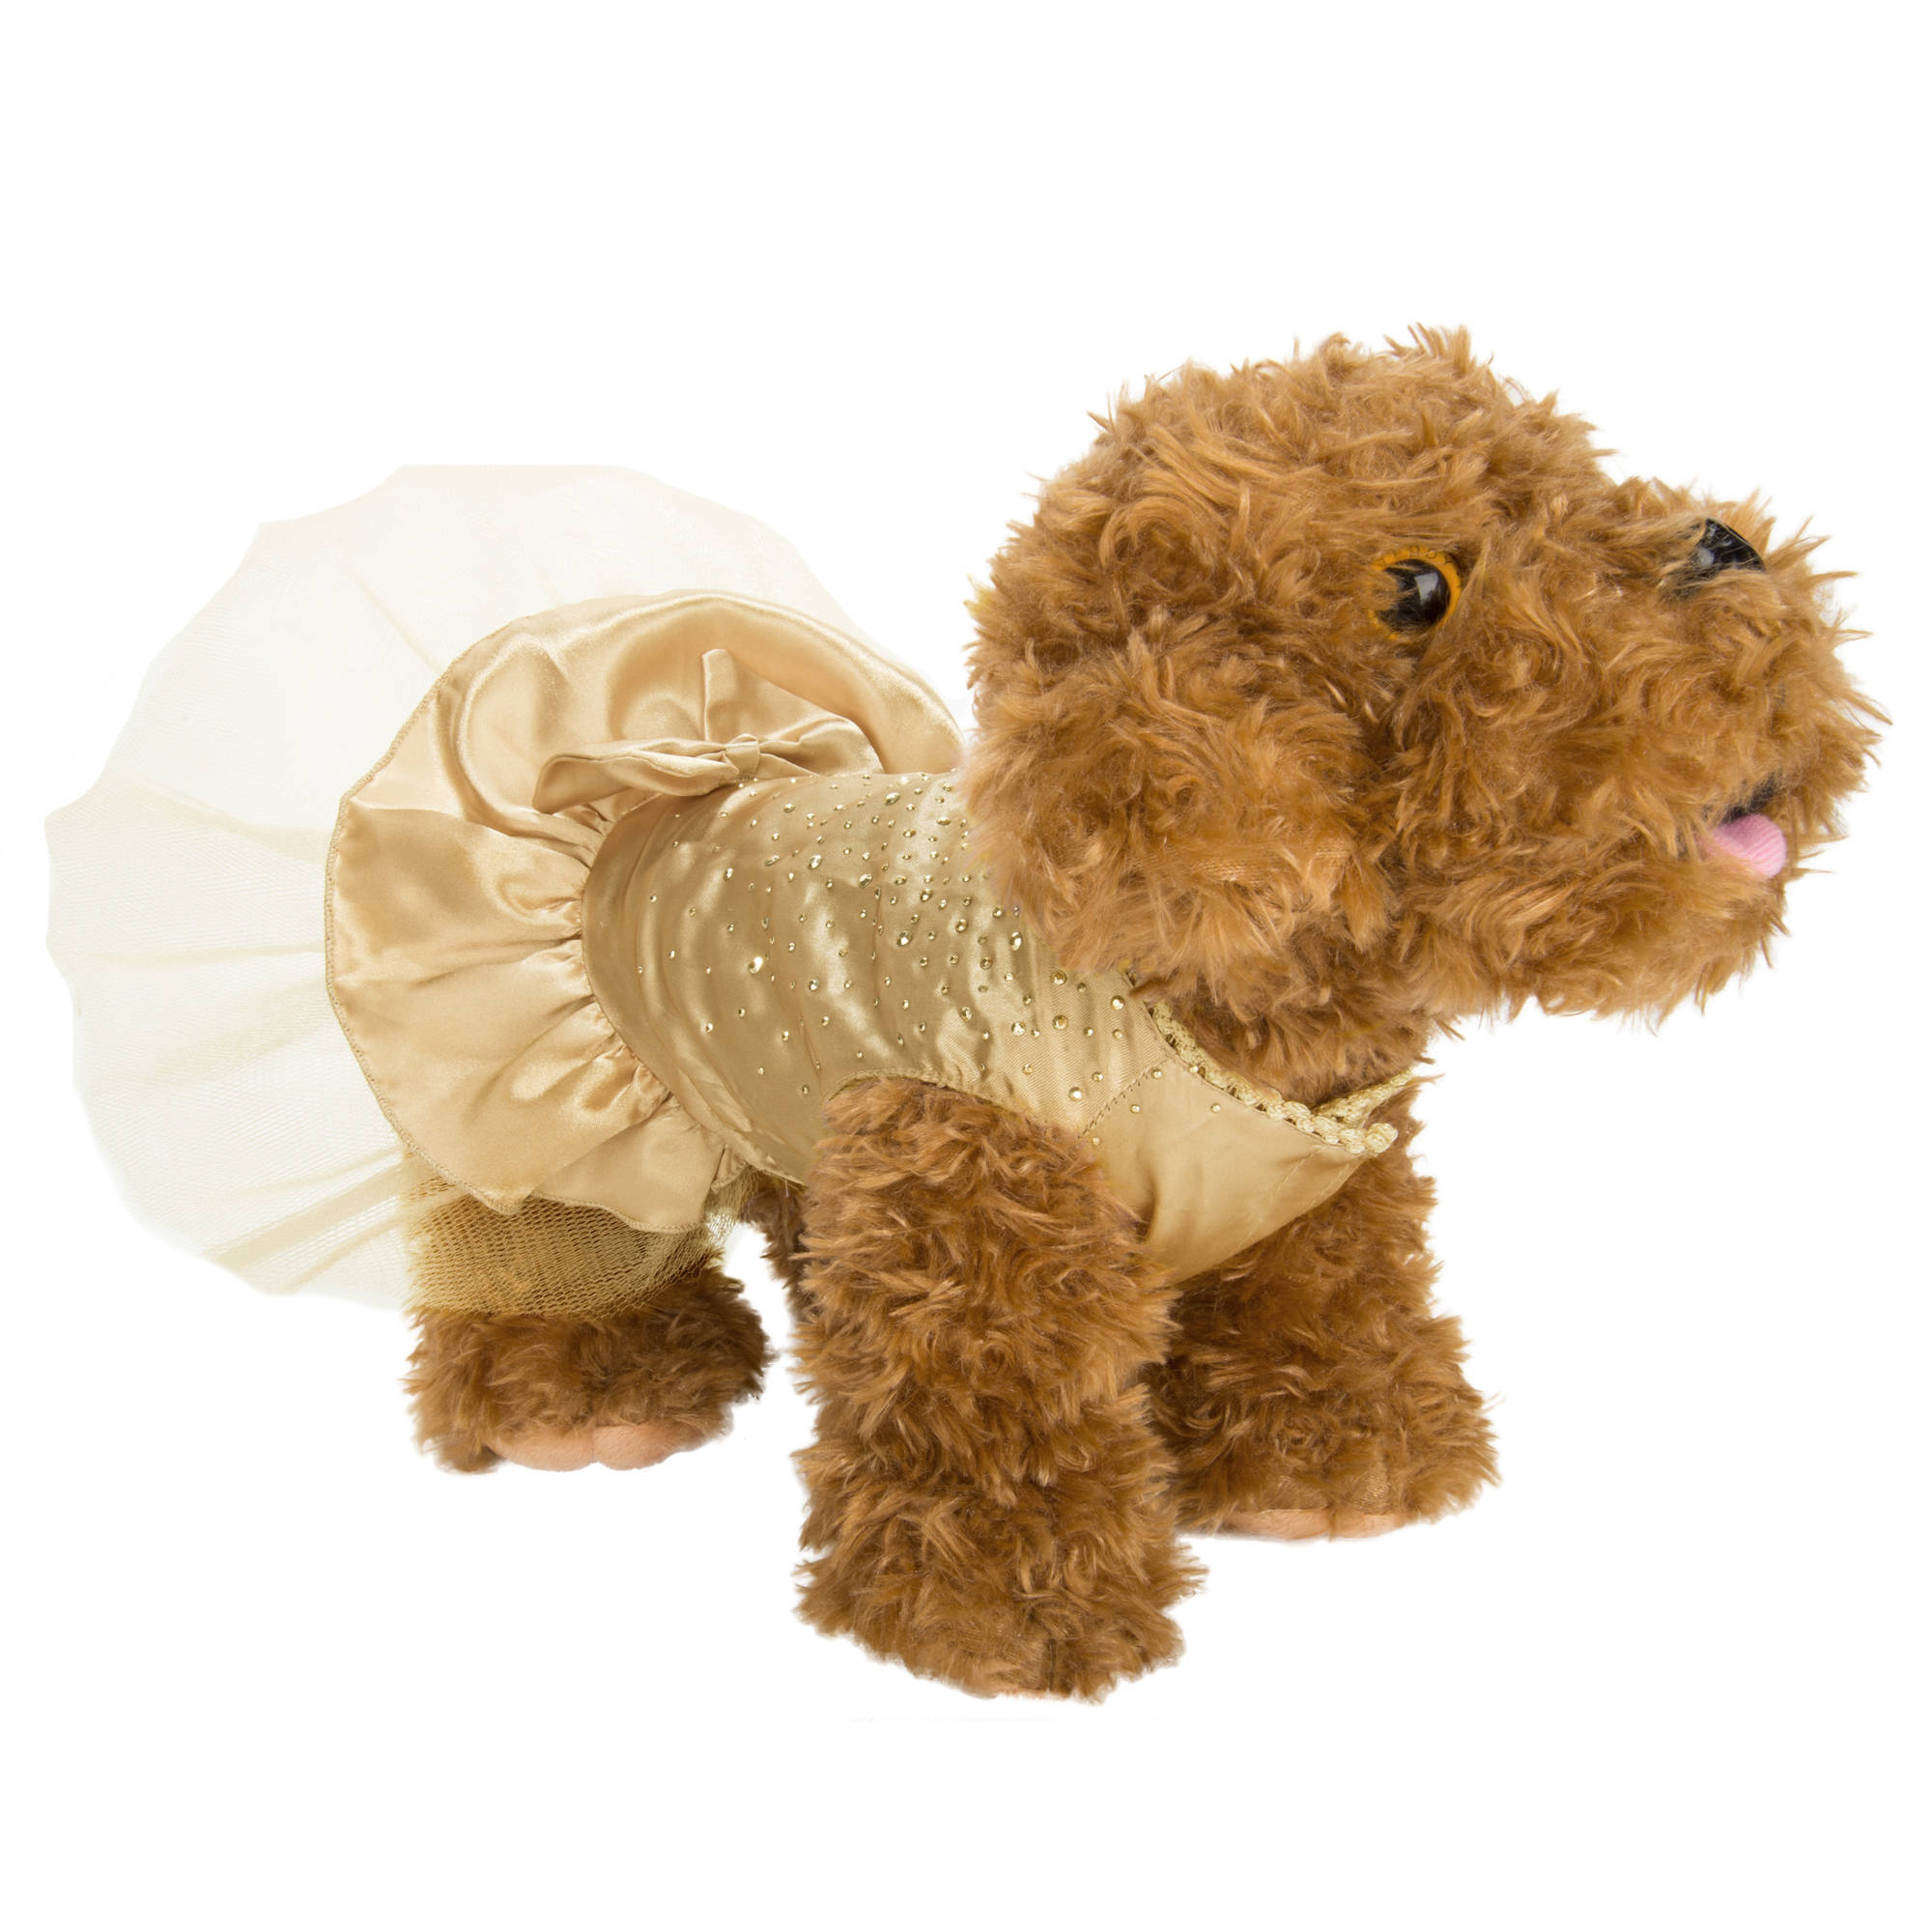 CUECUEPET Sequin Princess Dog Silk Dress for Female/Girl Dogs or Puppies